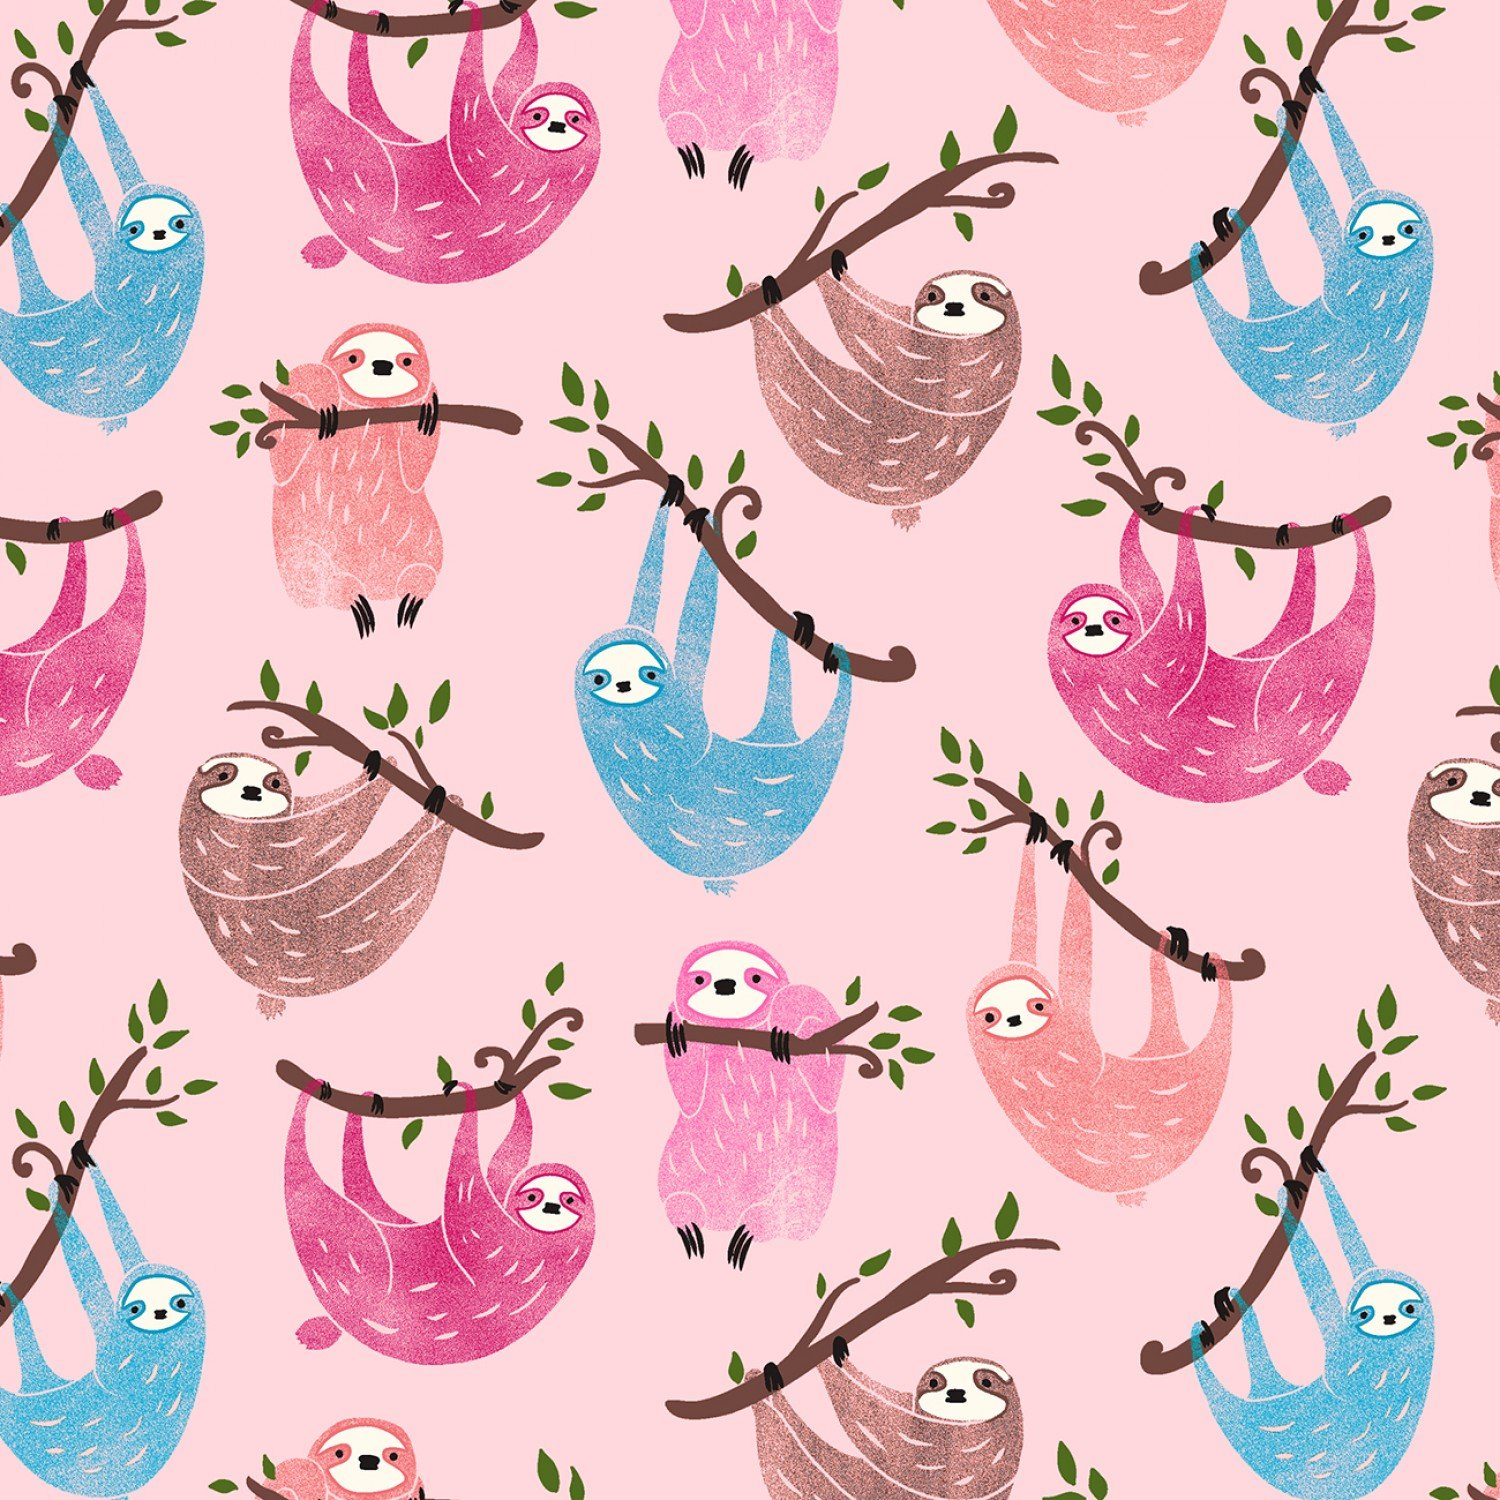 SPECIALTY FABRICS: Pink, Blue, and Brown Sloths Hanging From Tree Branches on Pink:  Fun by Timeless Treasures